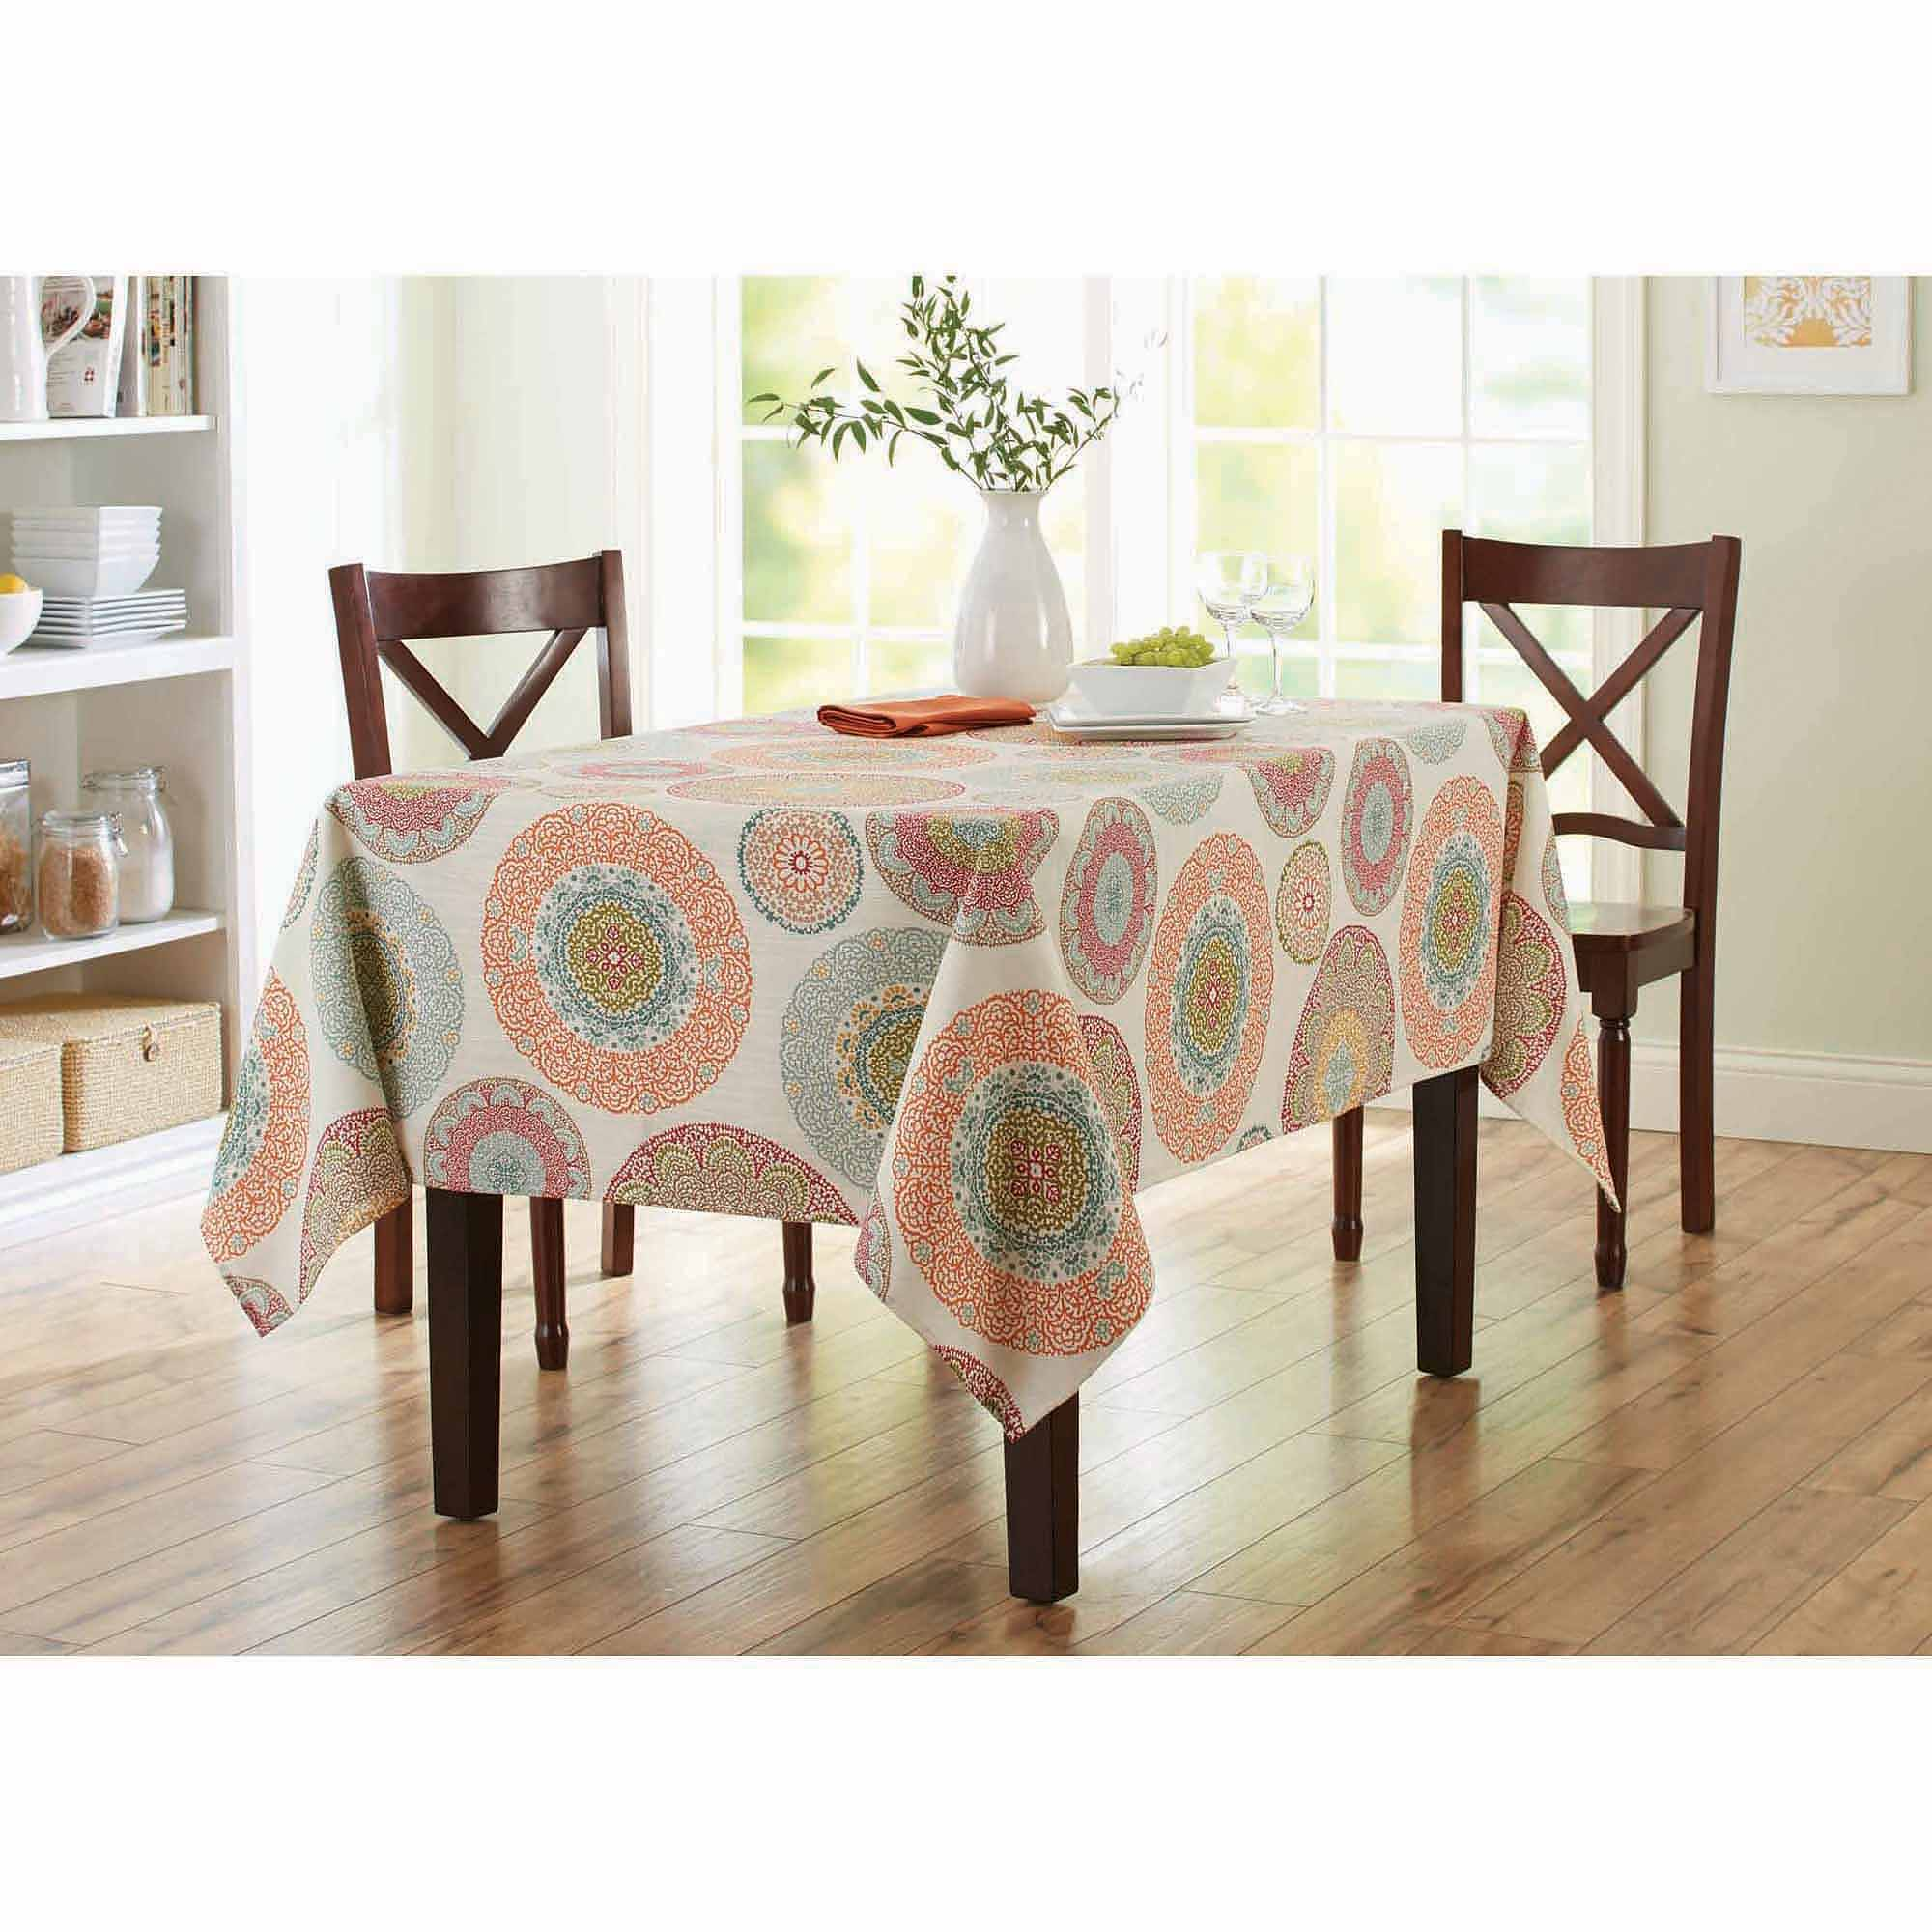 better homes gardens lace medallion tablecloth for inch round accent table pier imports dishes small chest drawers target sofa white washed wood end tables tall nightstand chair